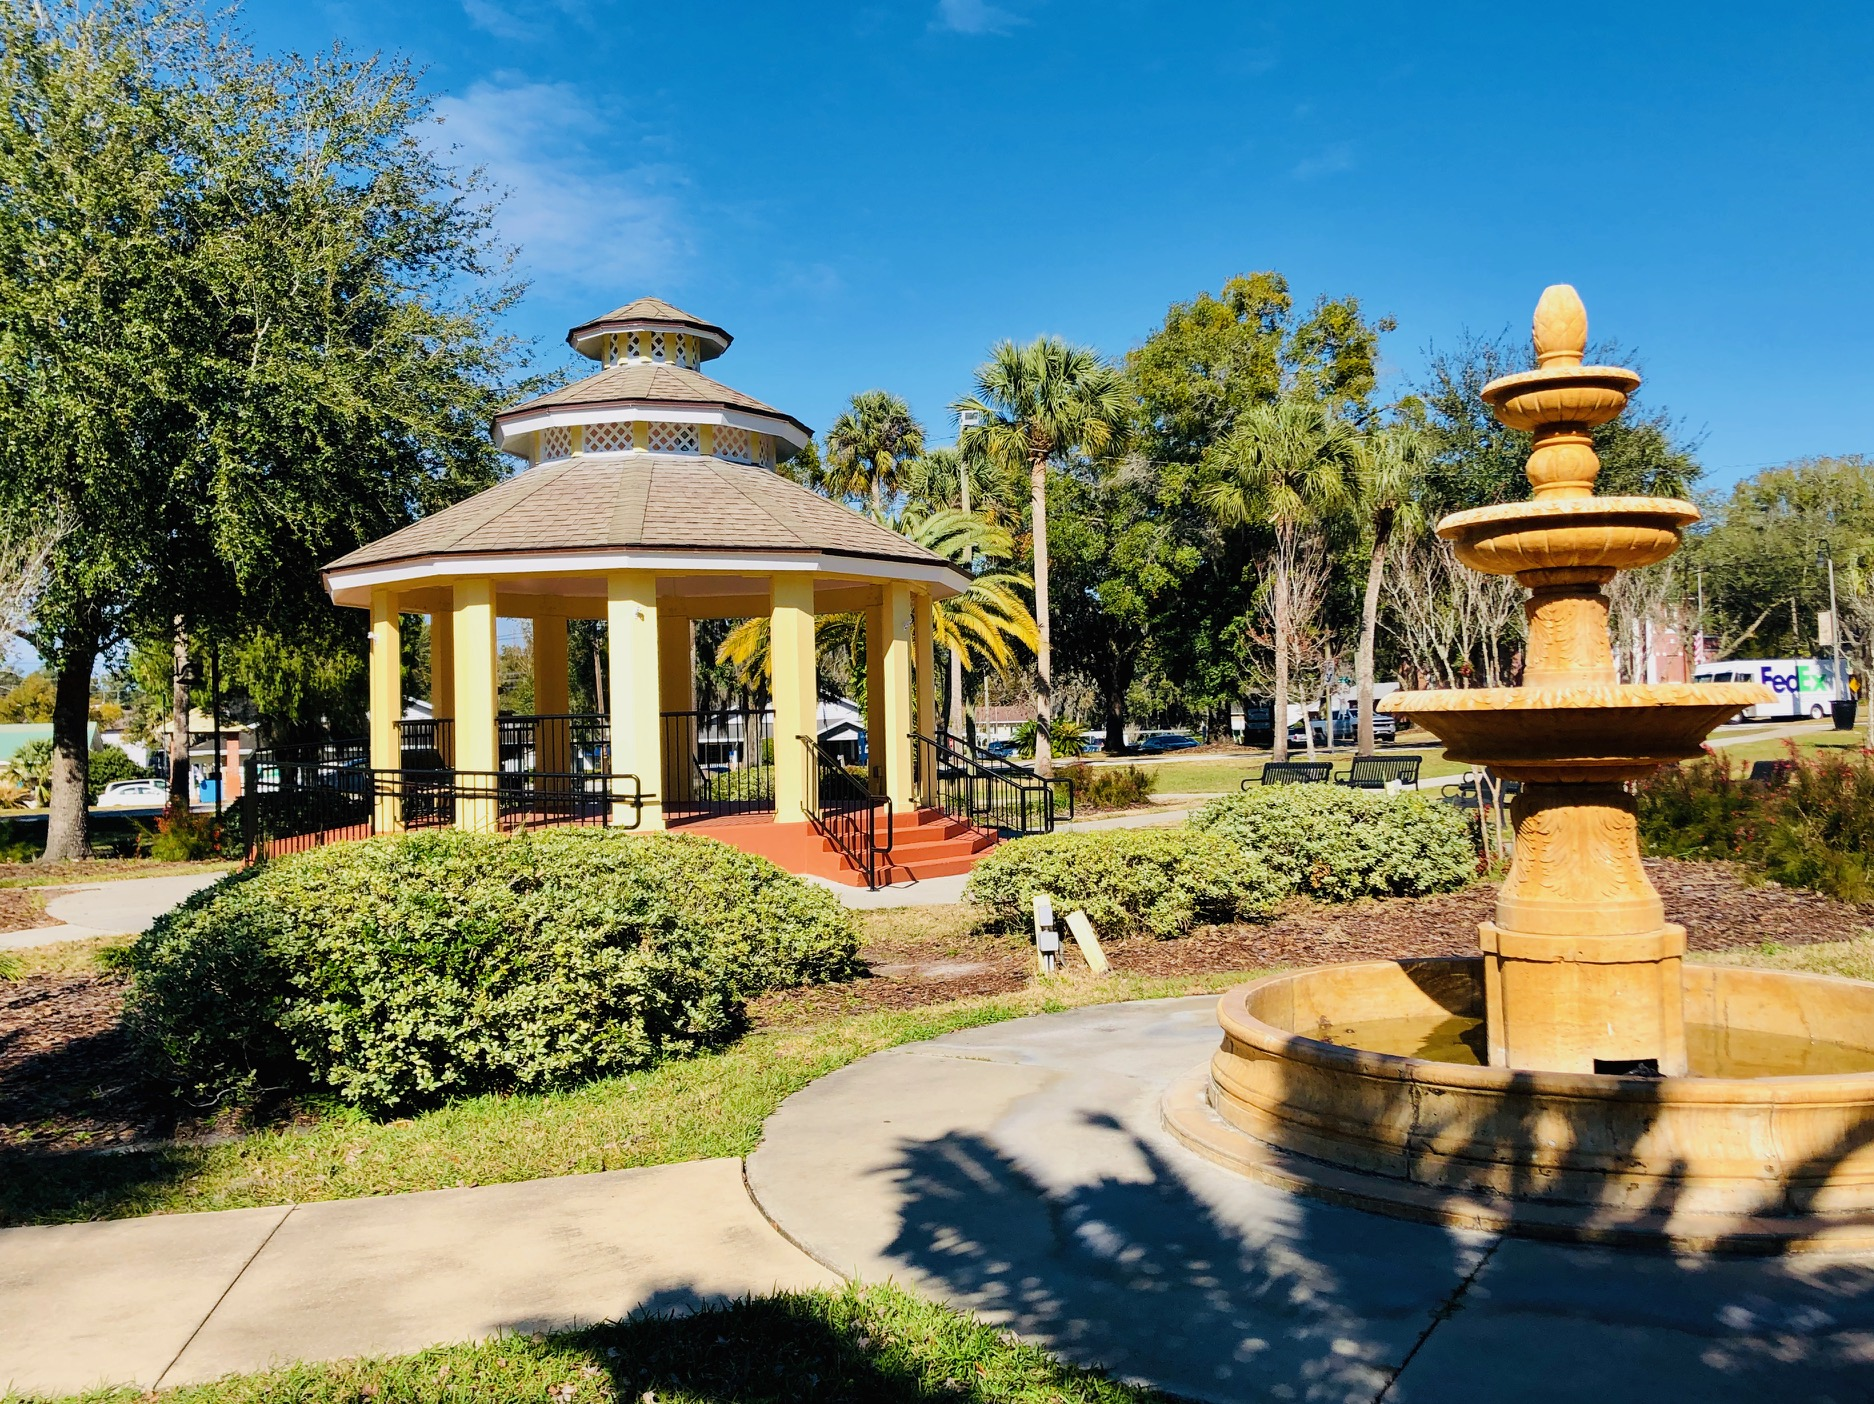 Dickinson Park Fountain and Gazebo